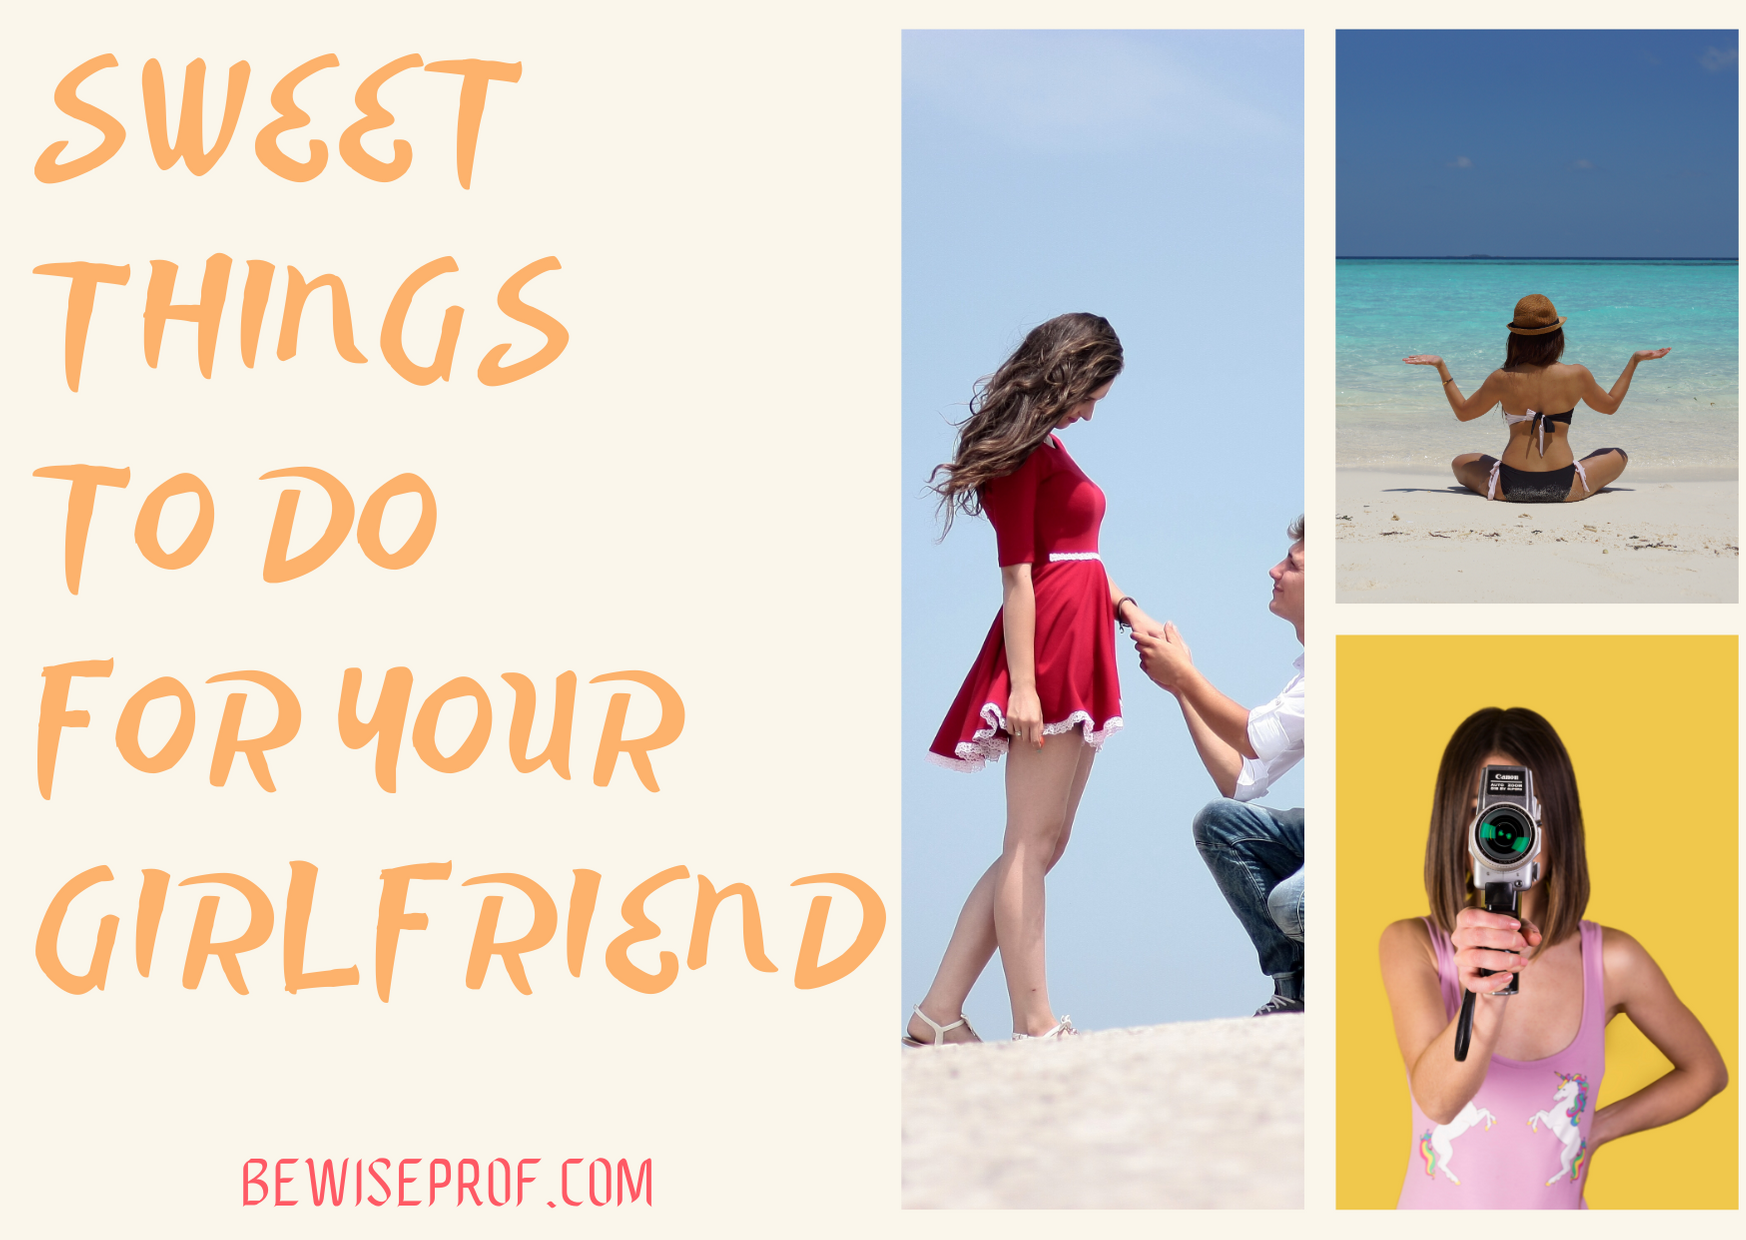 Sweet Things To Do For Your Girlfriend